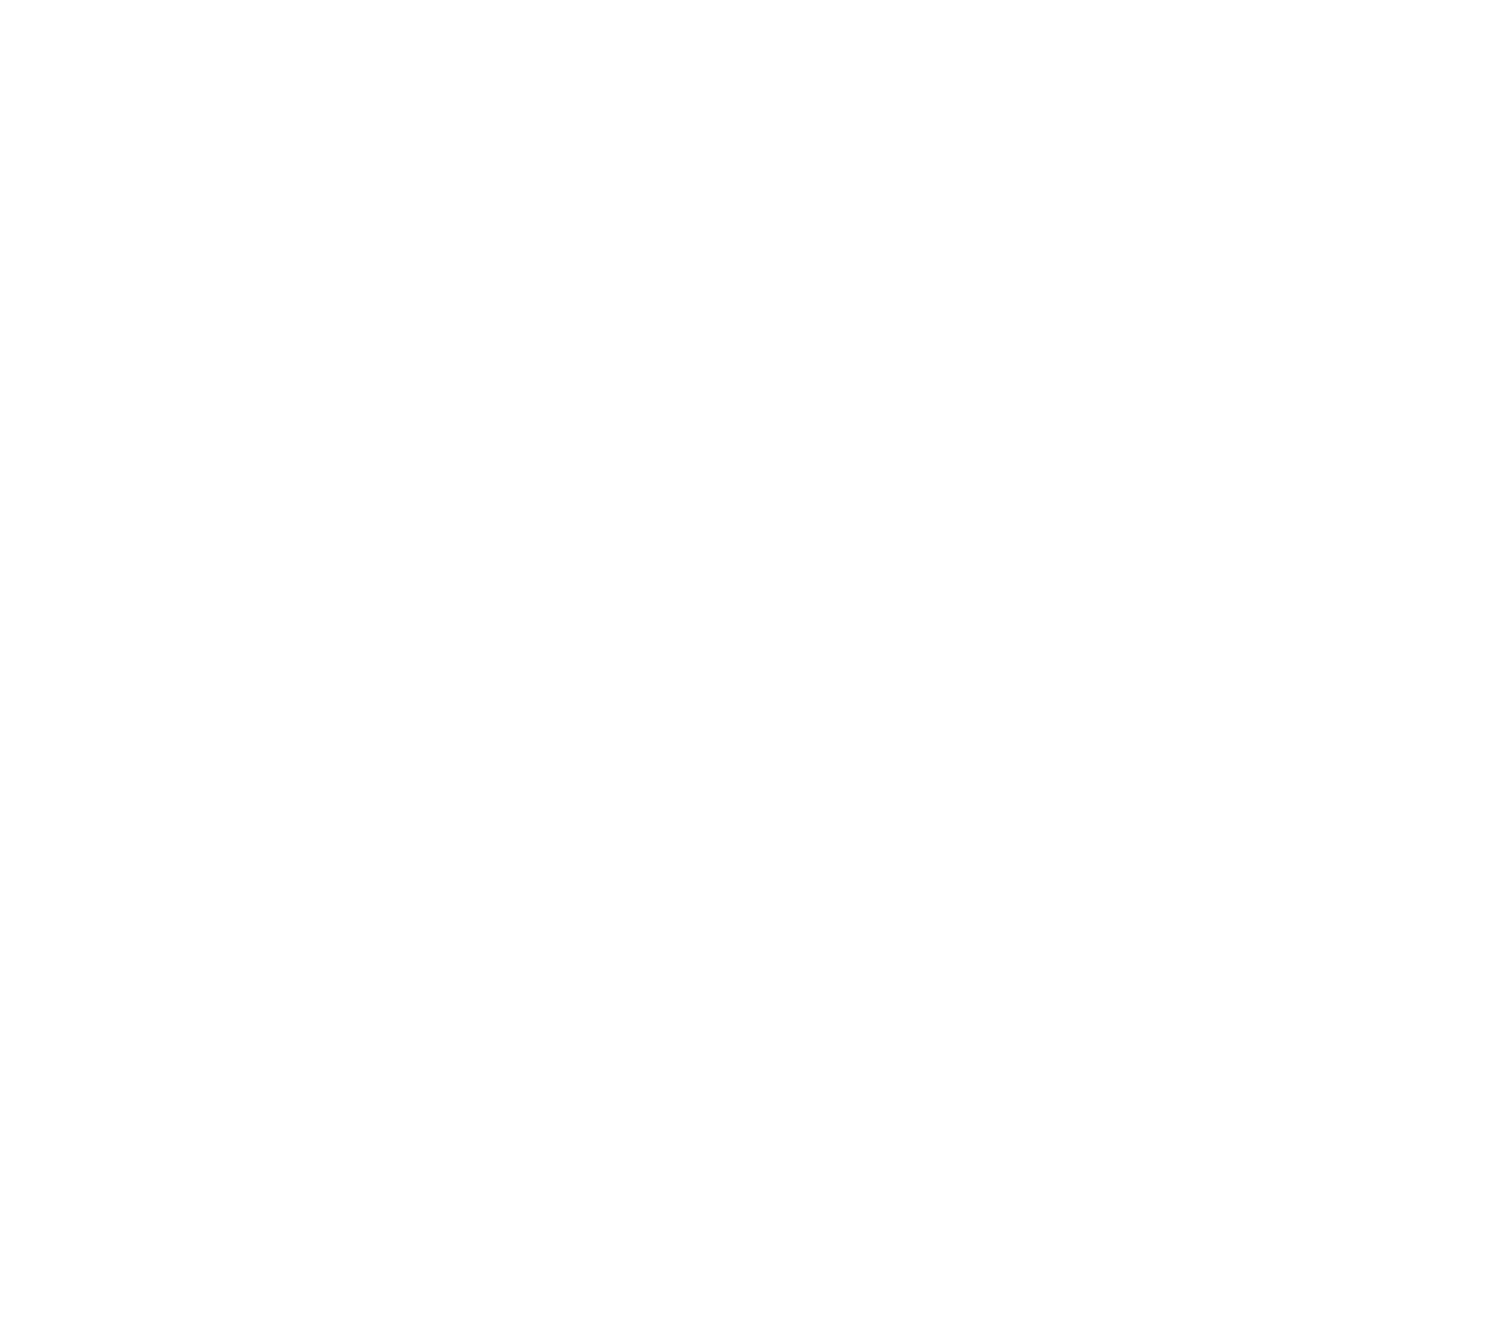 The Underground Taos